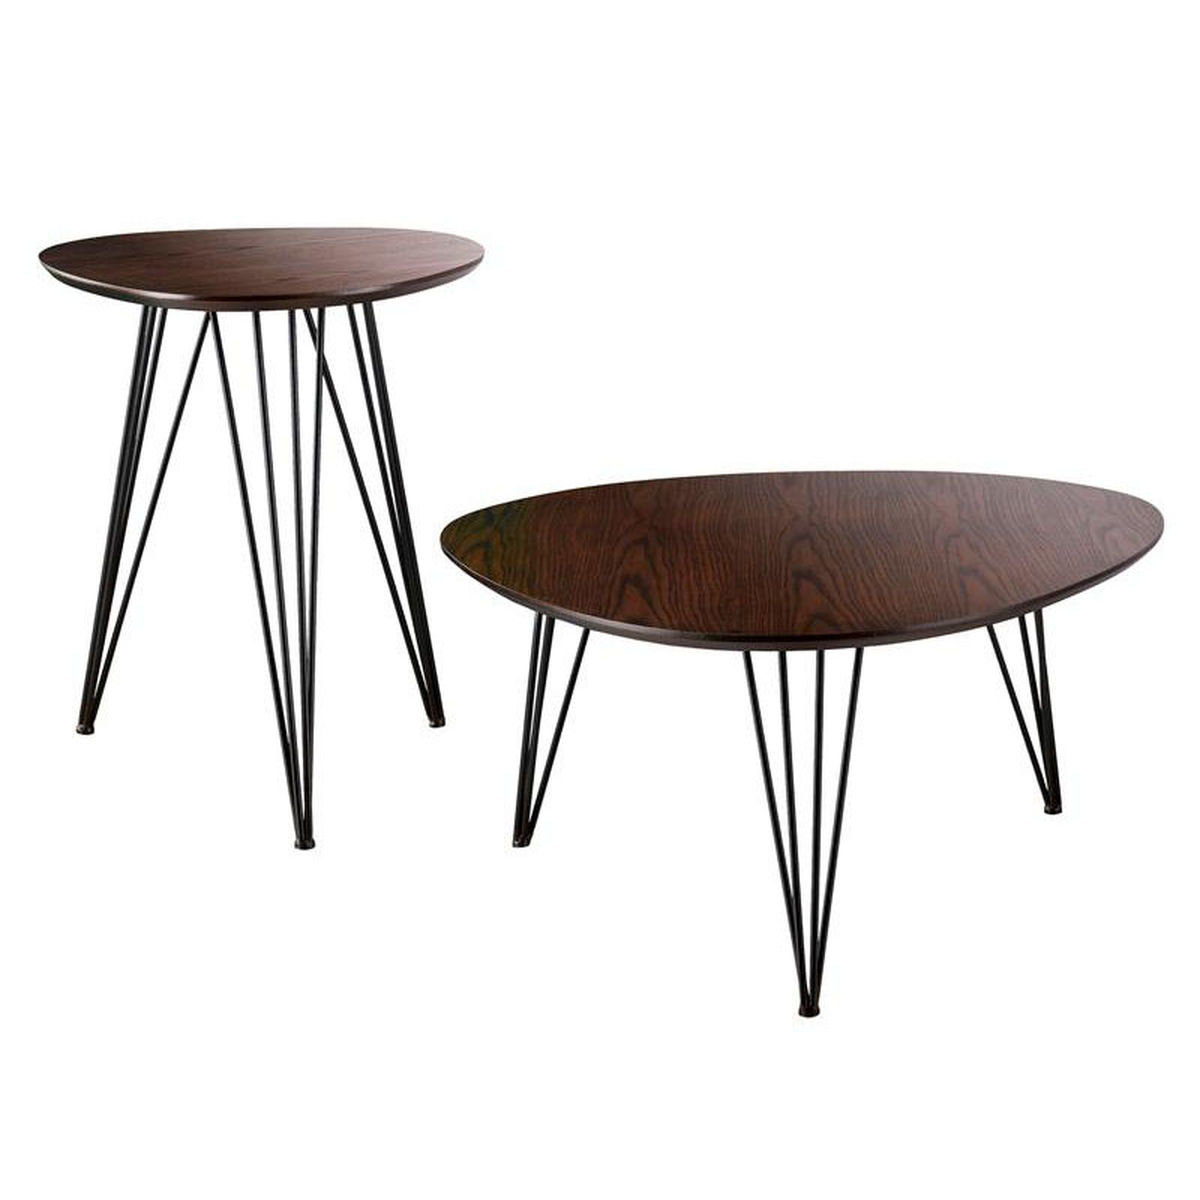 piece accent table set bizchair holly and martin ham main industrial our bannock mid century modern with black hairpin metal legs drawers indoor plant acrylic side tables living